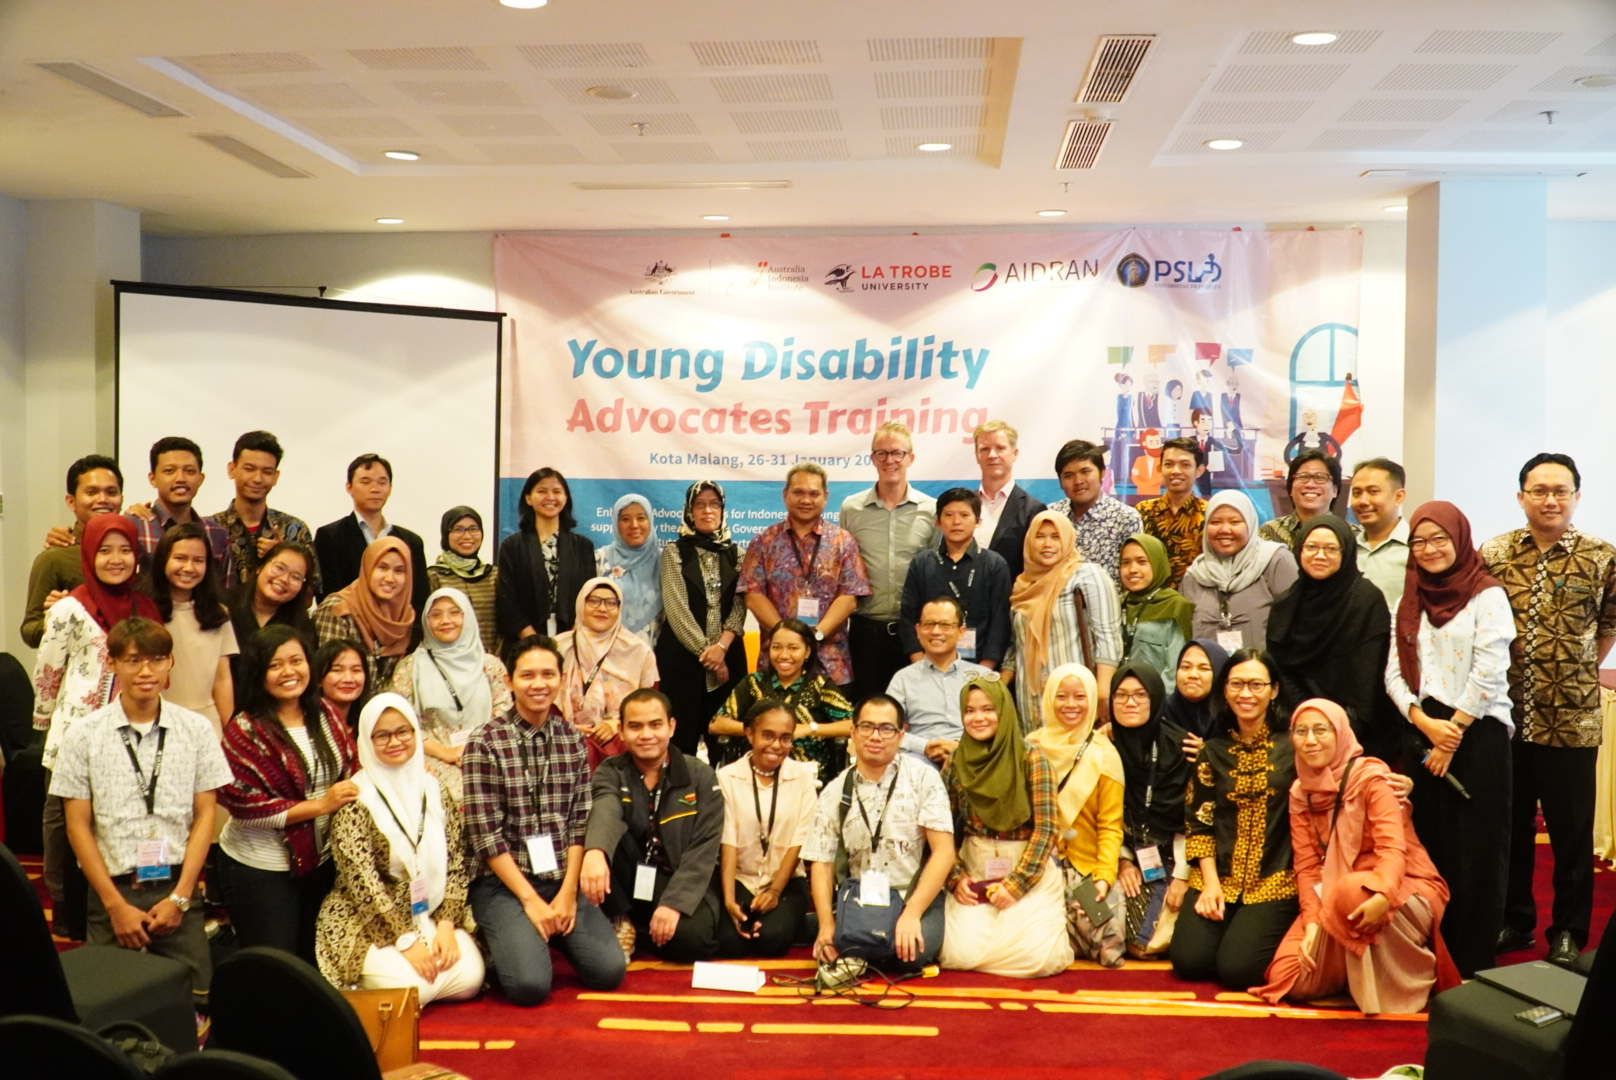 Young Disability Advocates Training (YDAT)